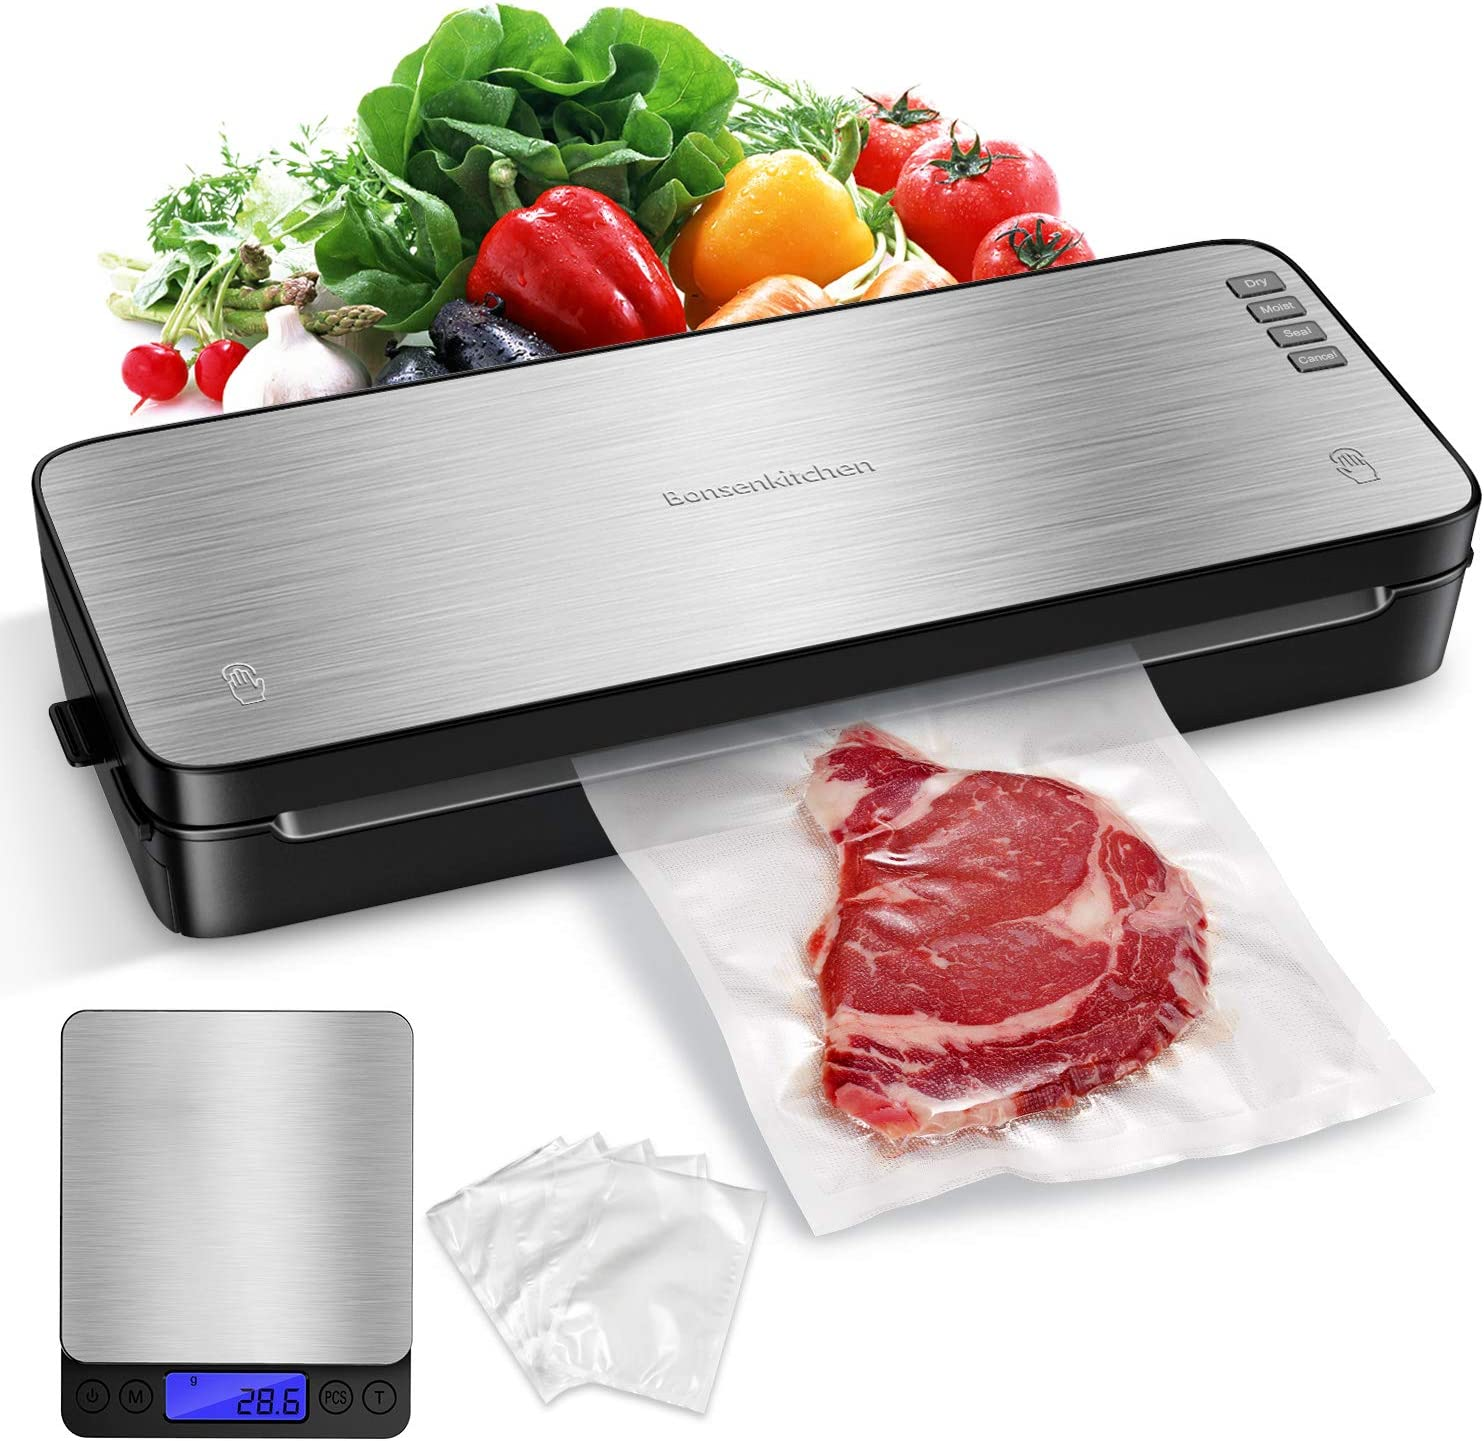 Food Saver Vacuum Sealer Machine For Food With Kitchen Digital Scale, Automatic Vaccume Sealer Machine Built in Air Sealing System with Kits, Avoid Dehydration n Freezer Burn For Sous Vide